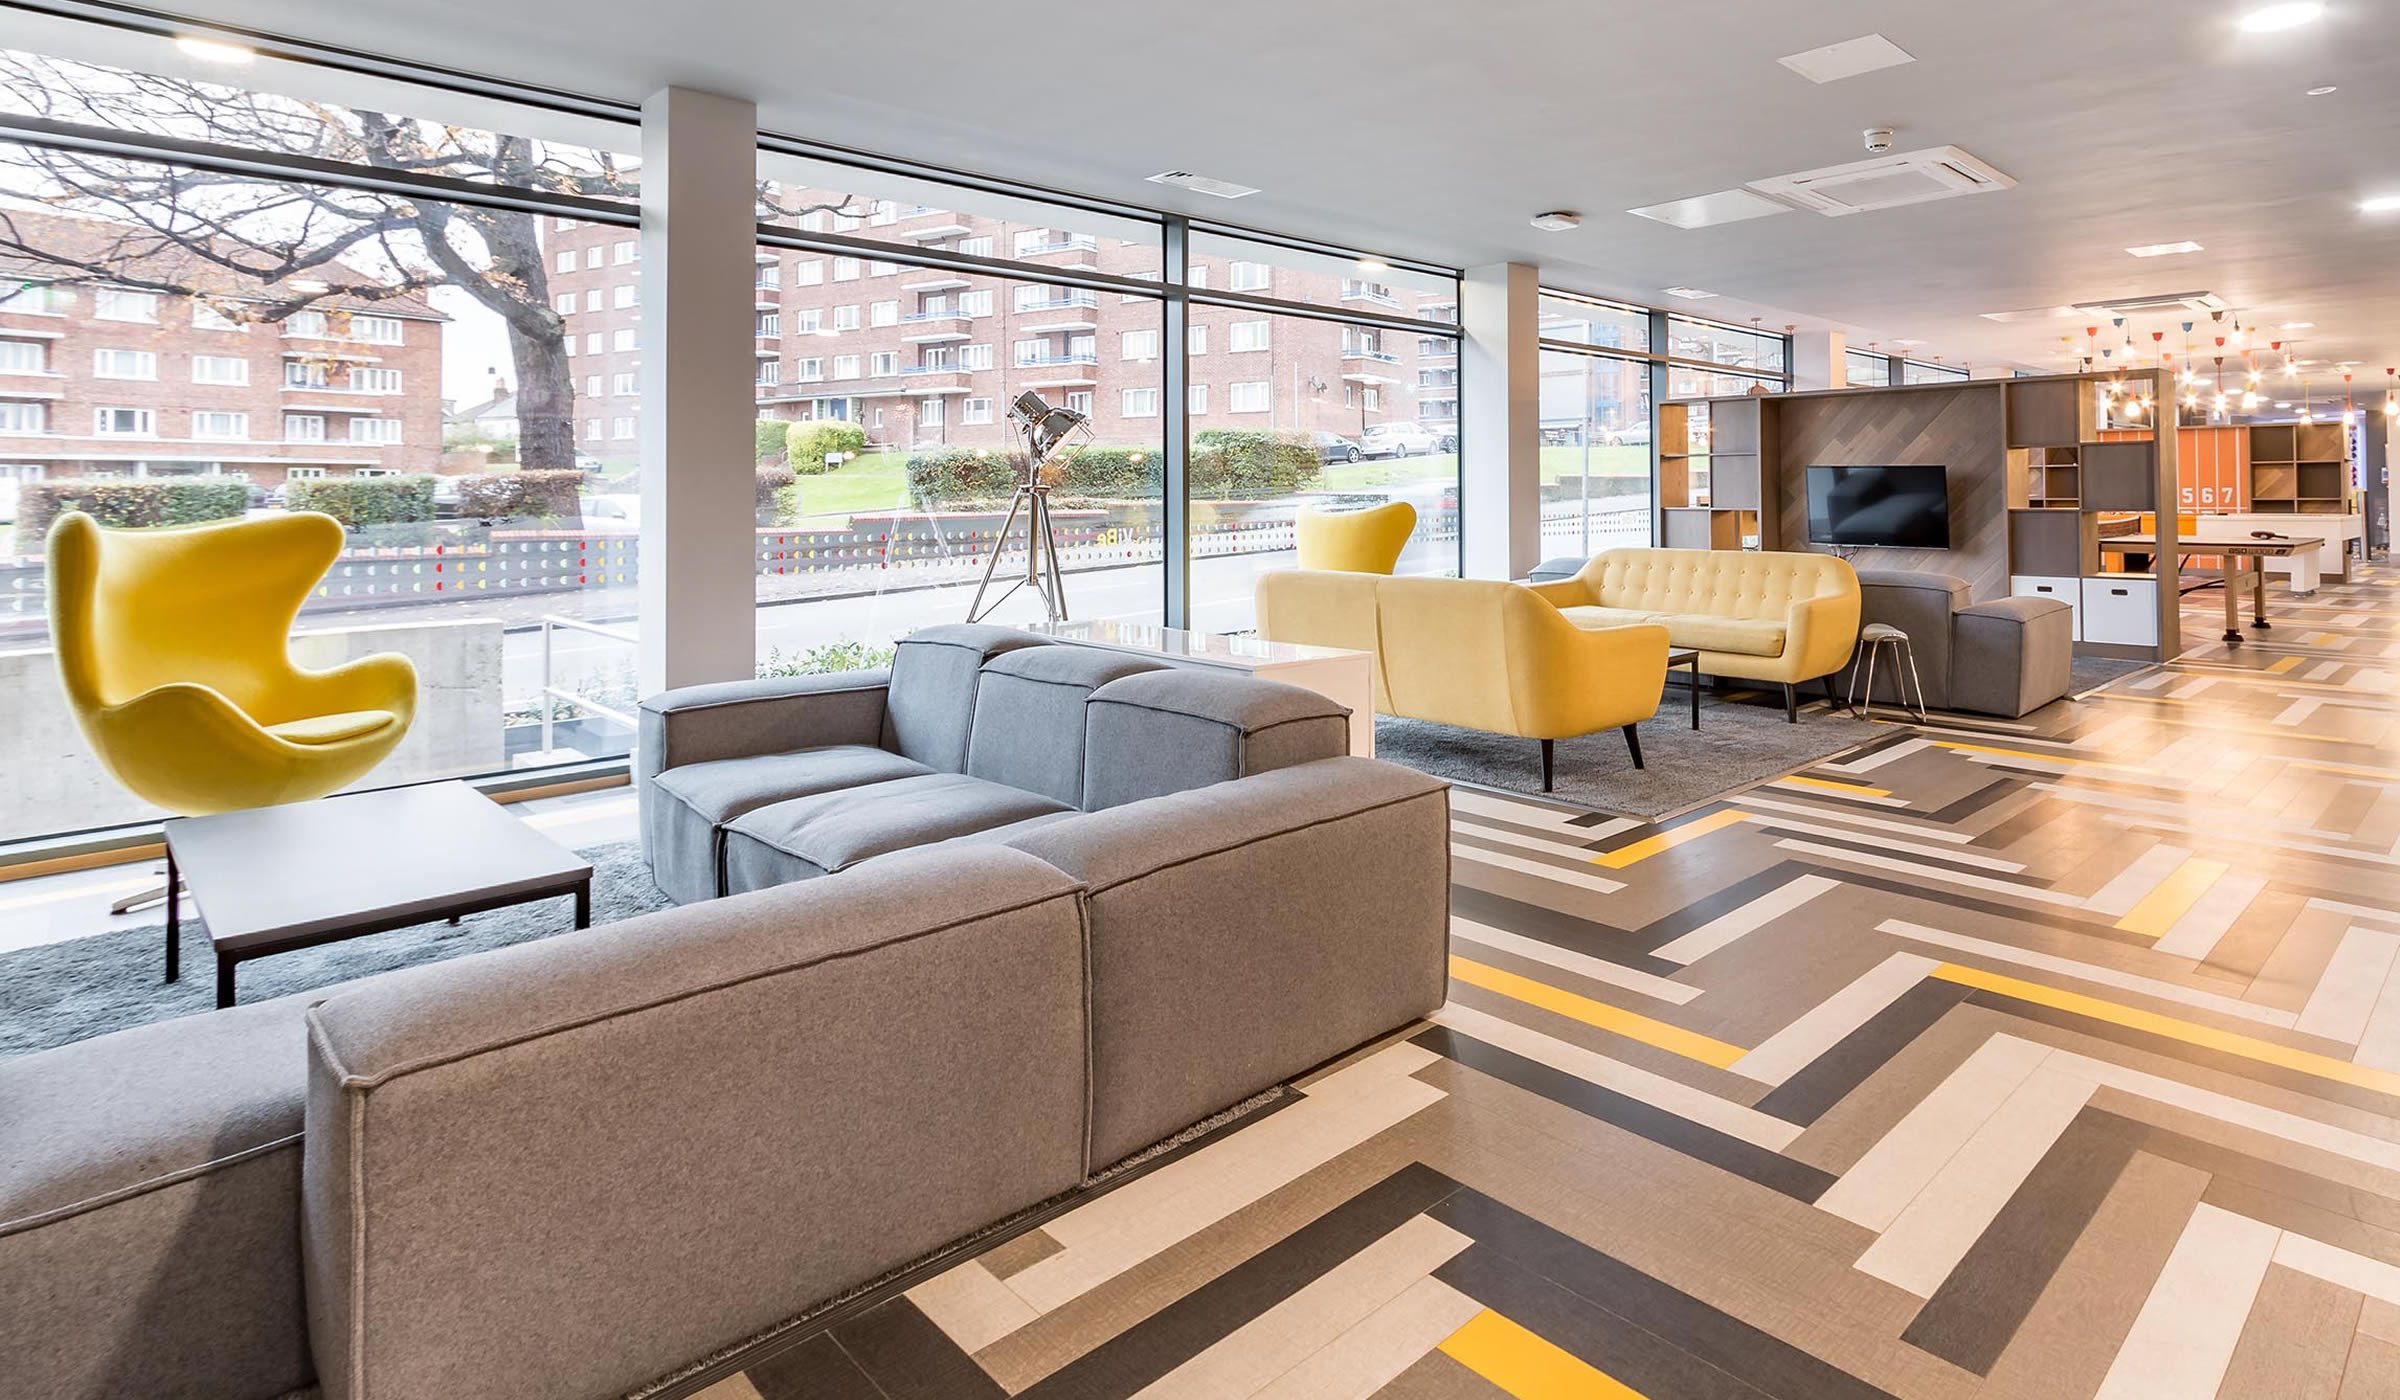 Vibe student accommodation lounge area